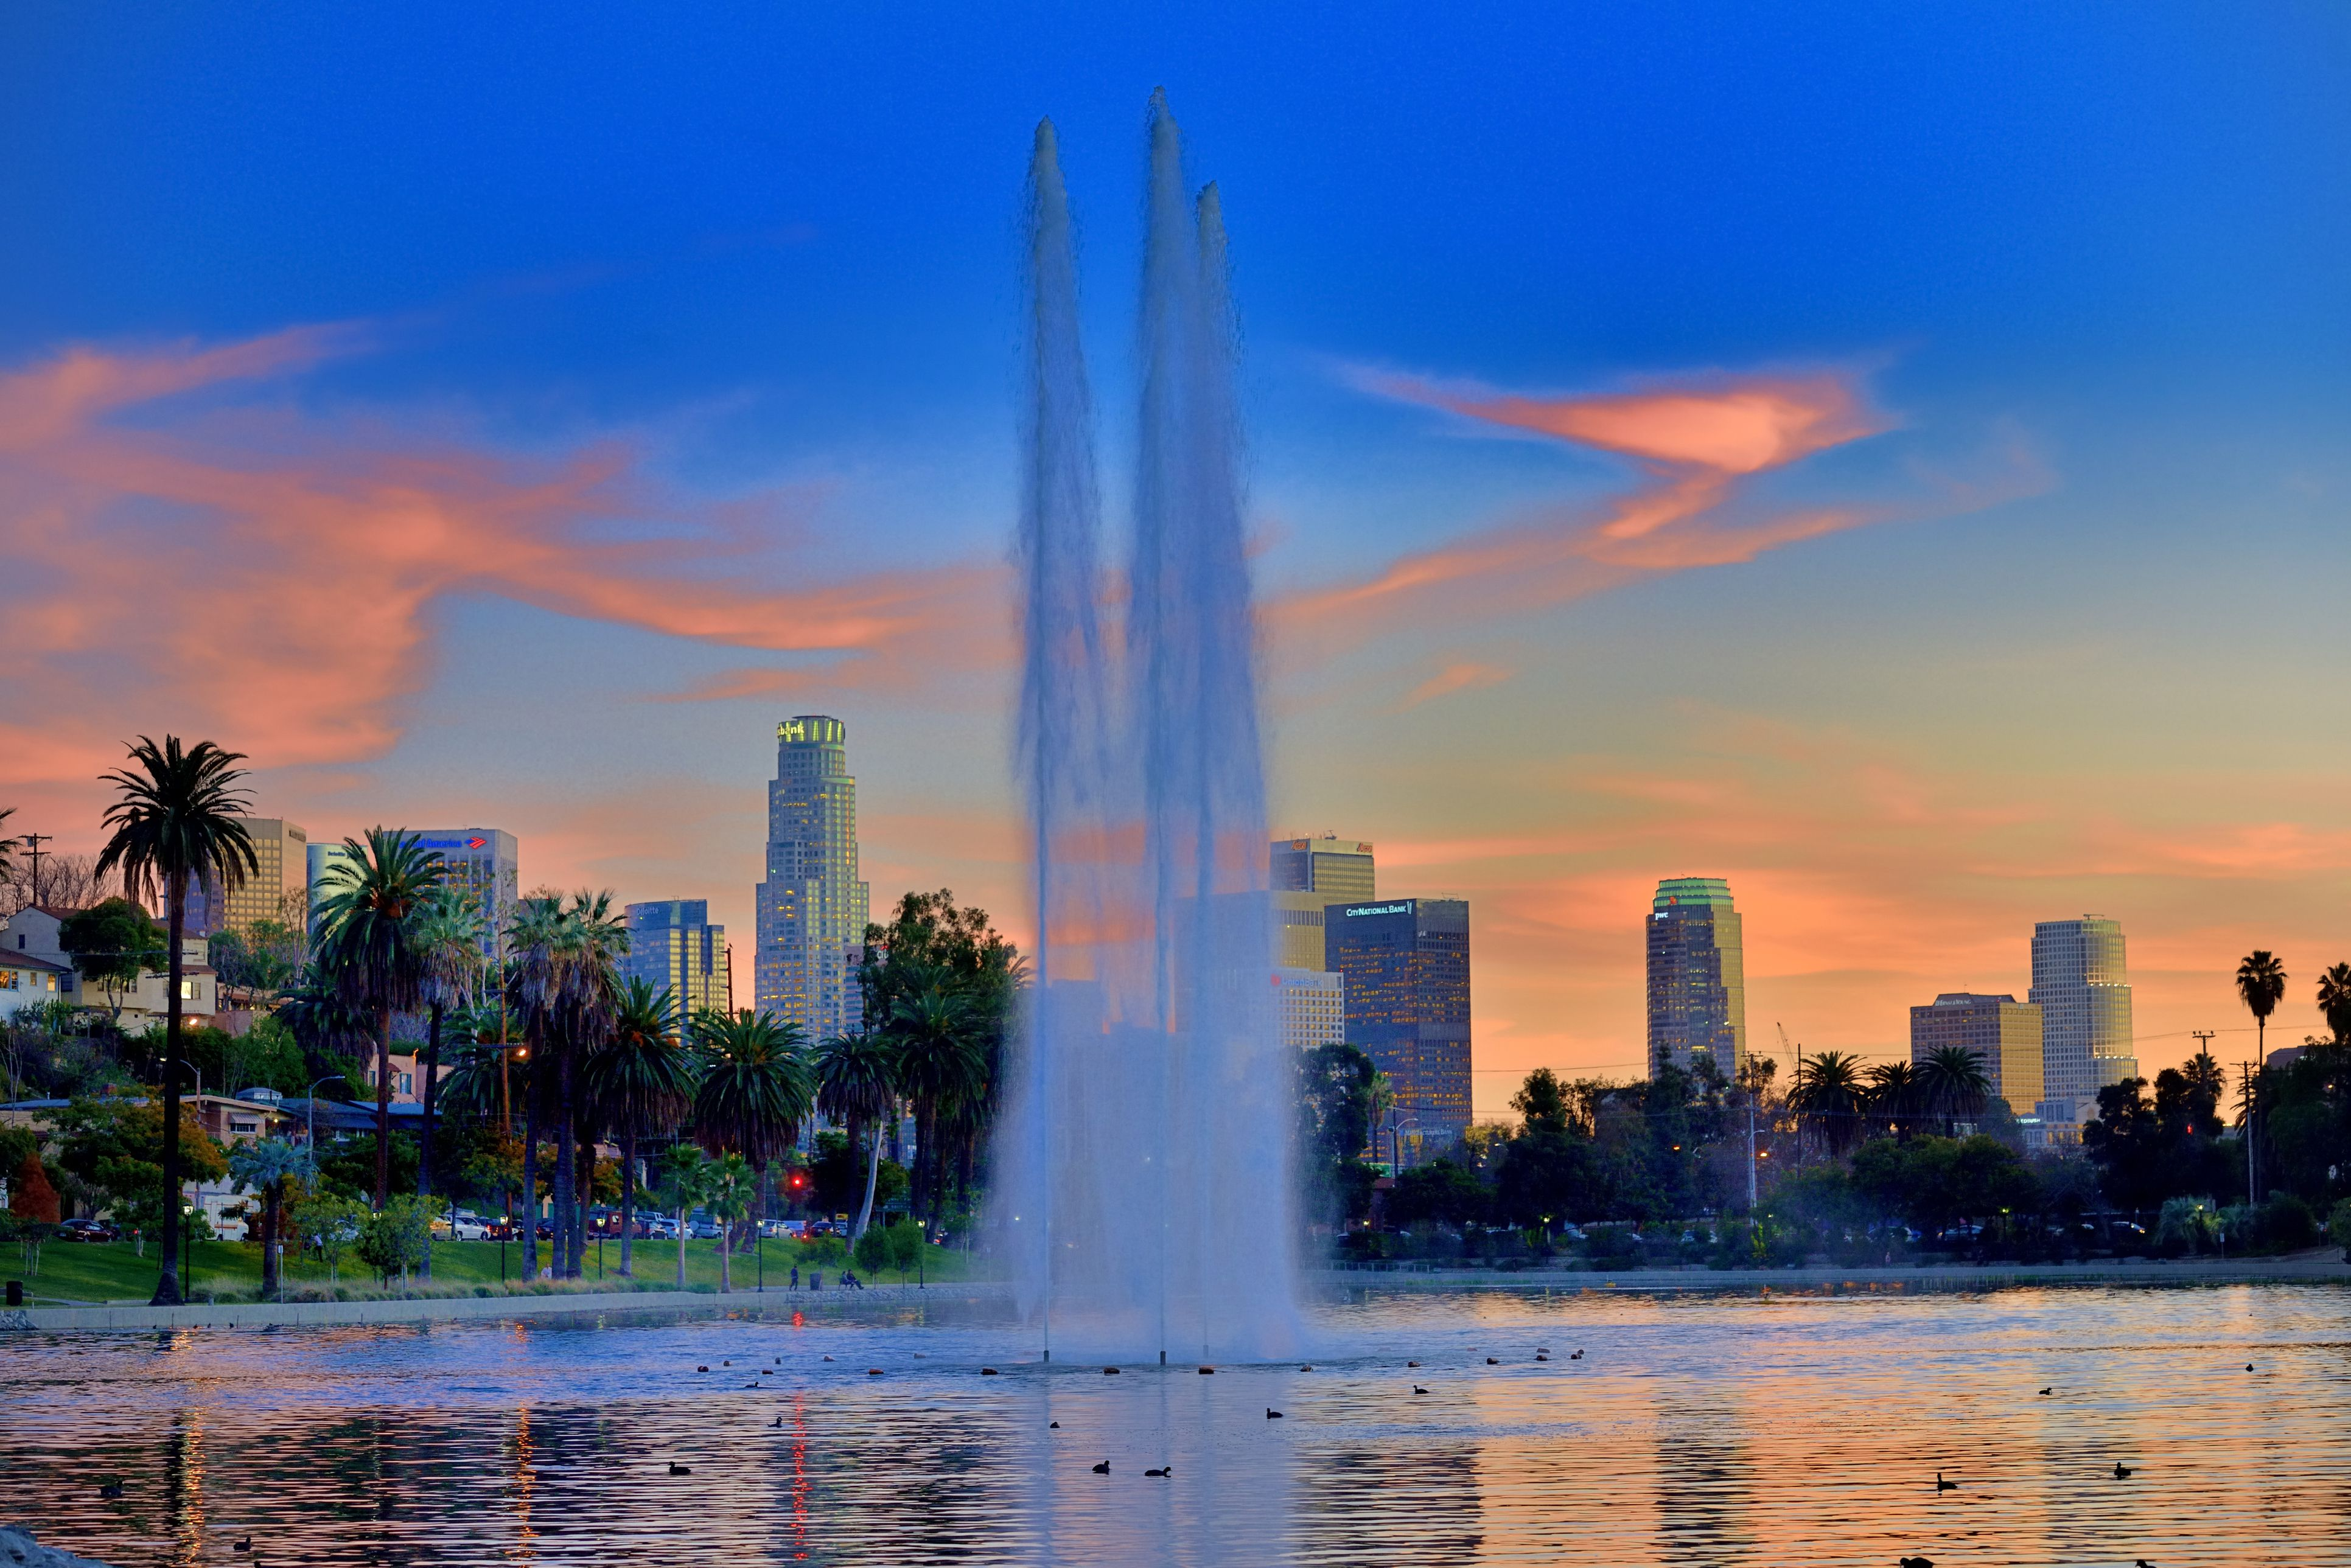 Downtown at sunset, seen from Lake Echo Park